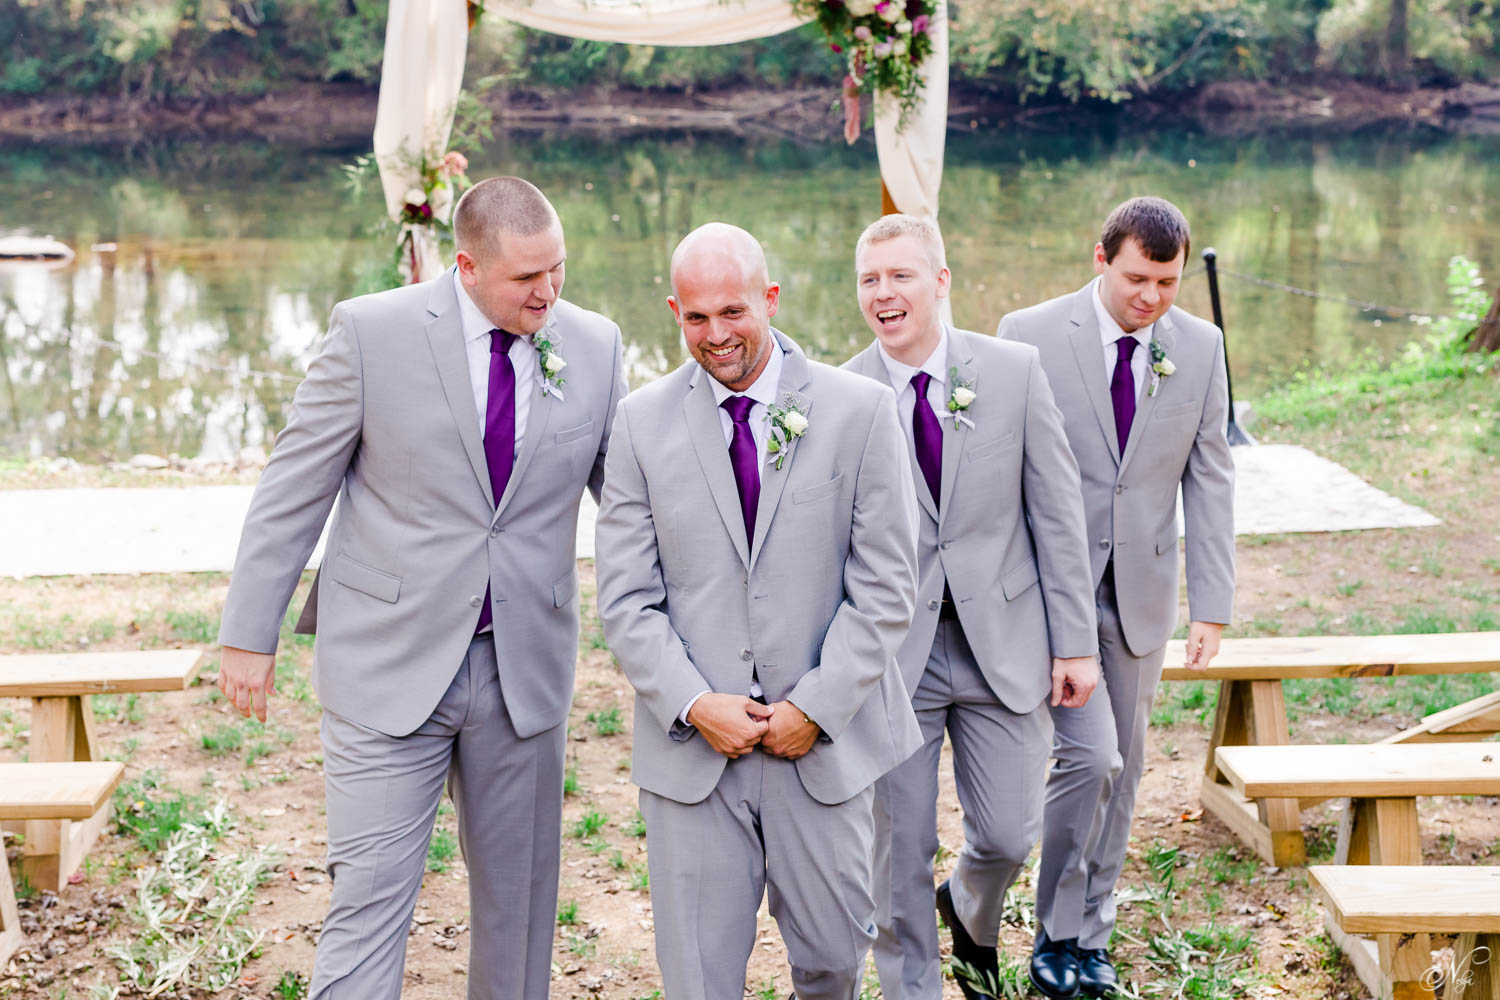 just the guys walking towards the wedding venue before the ceremony